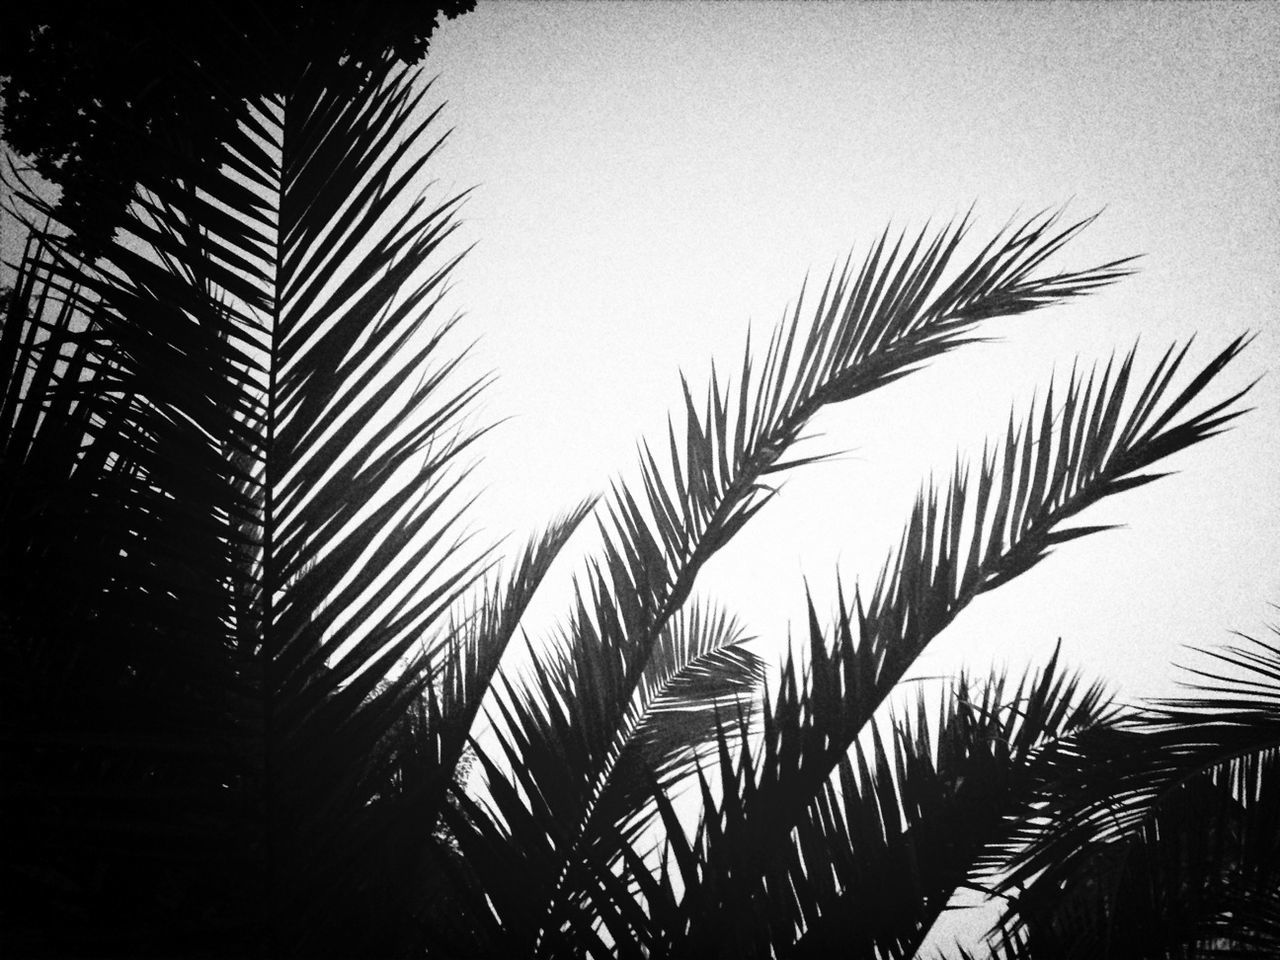 Silhouette Coconut Palm Tree Against Clear Sky